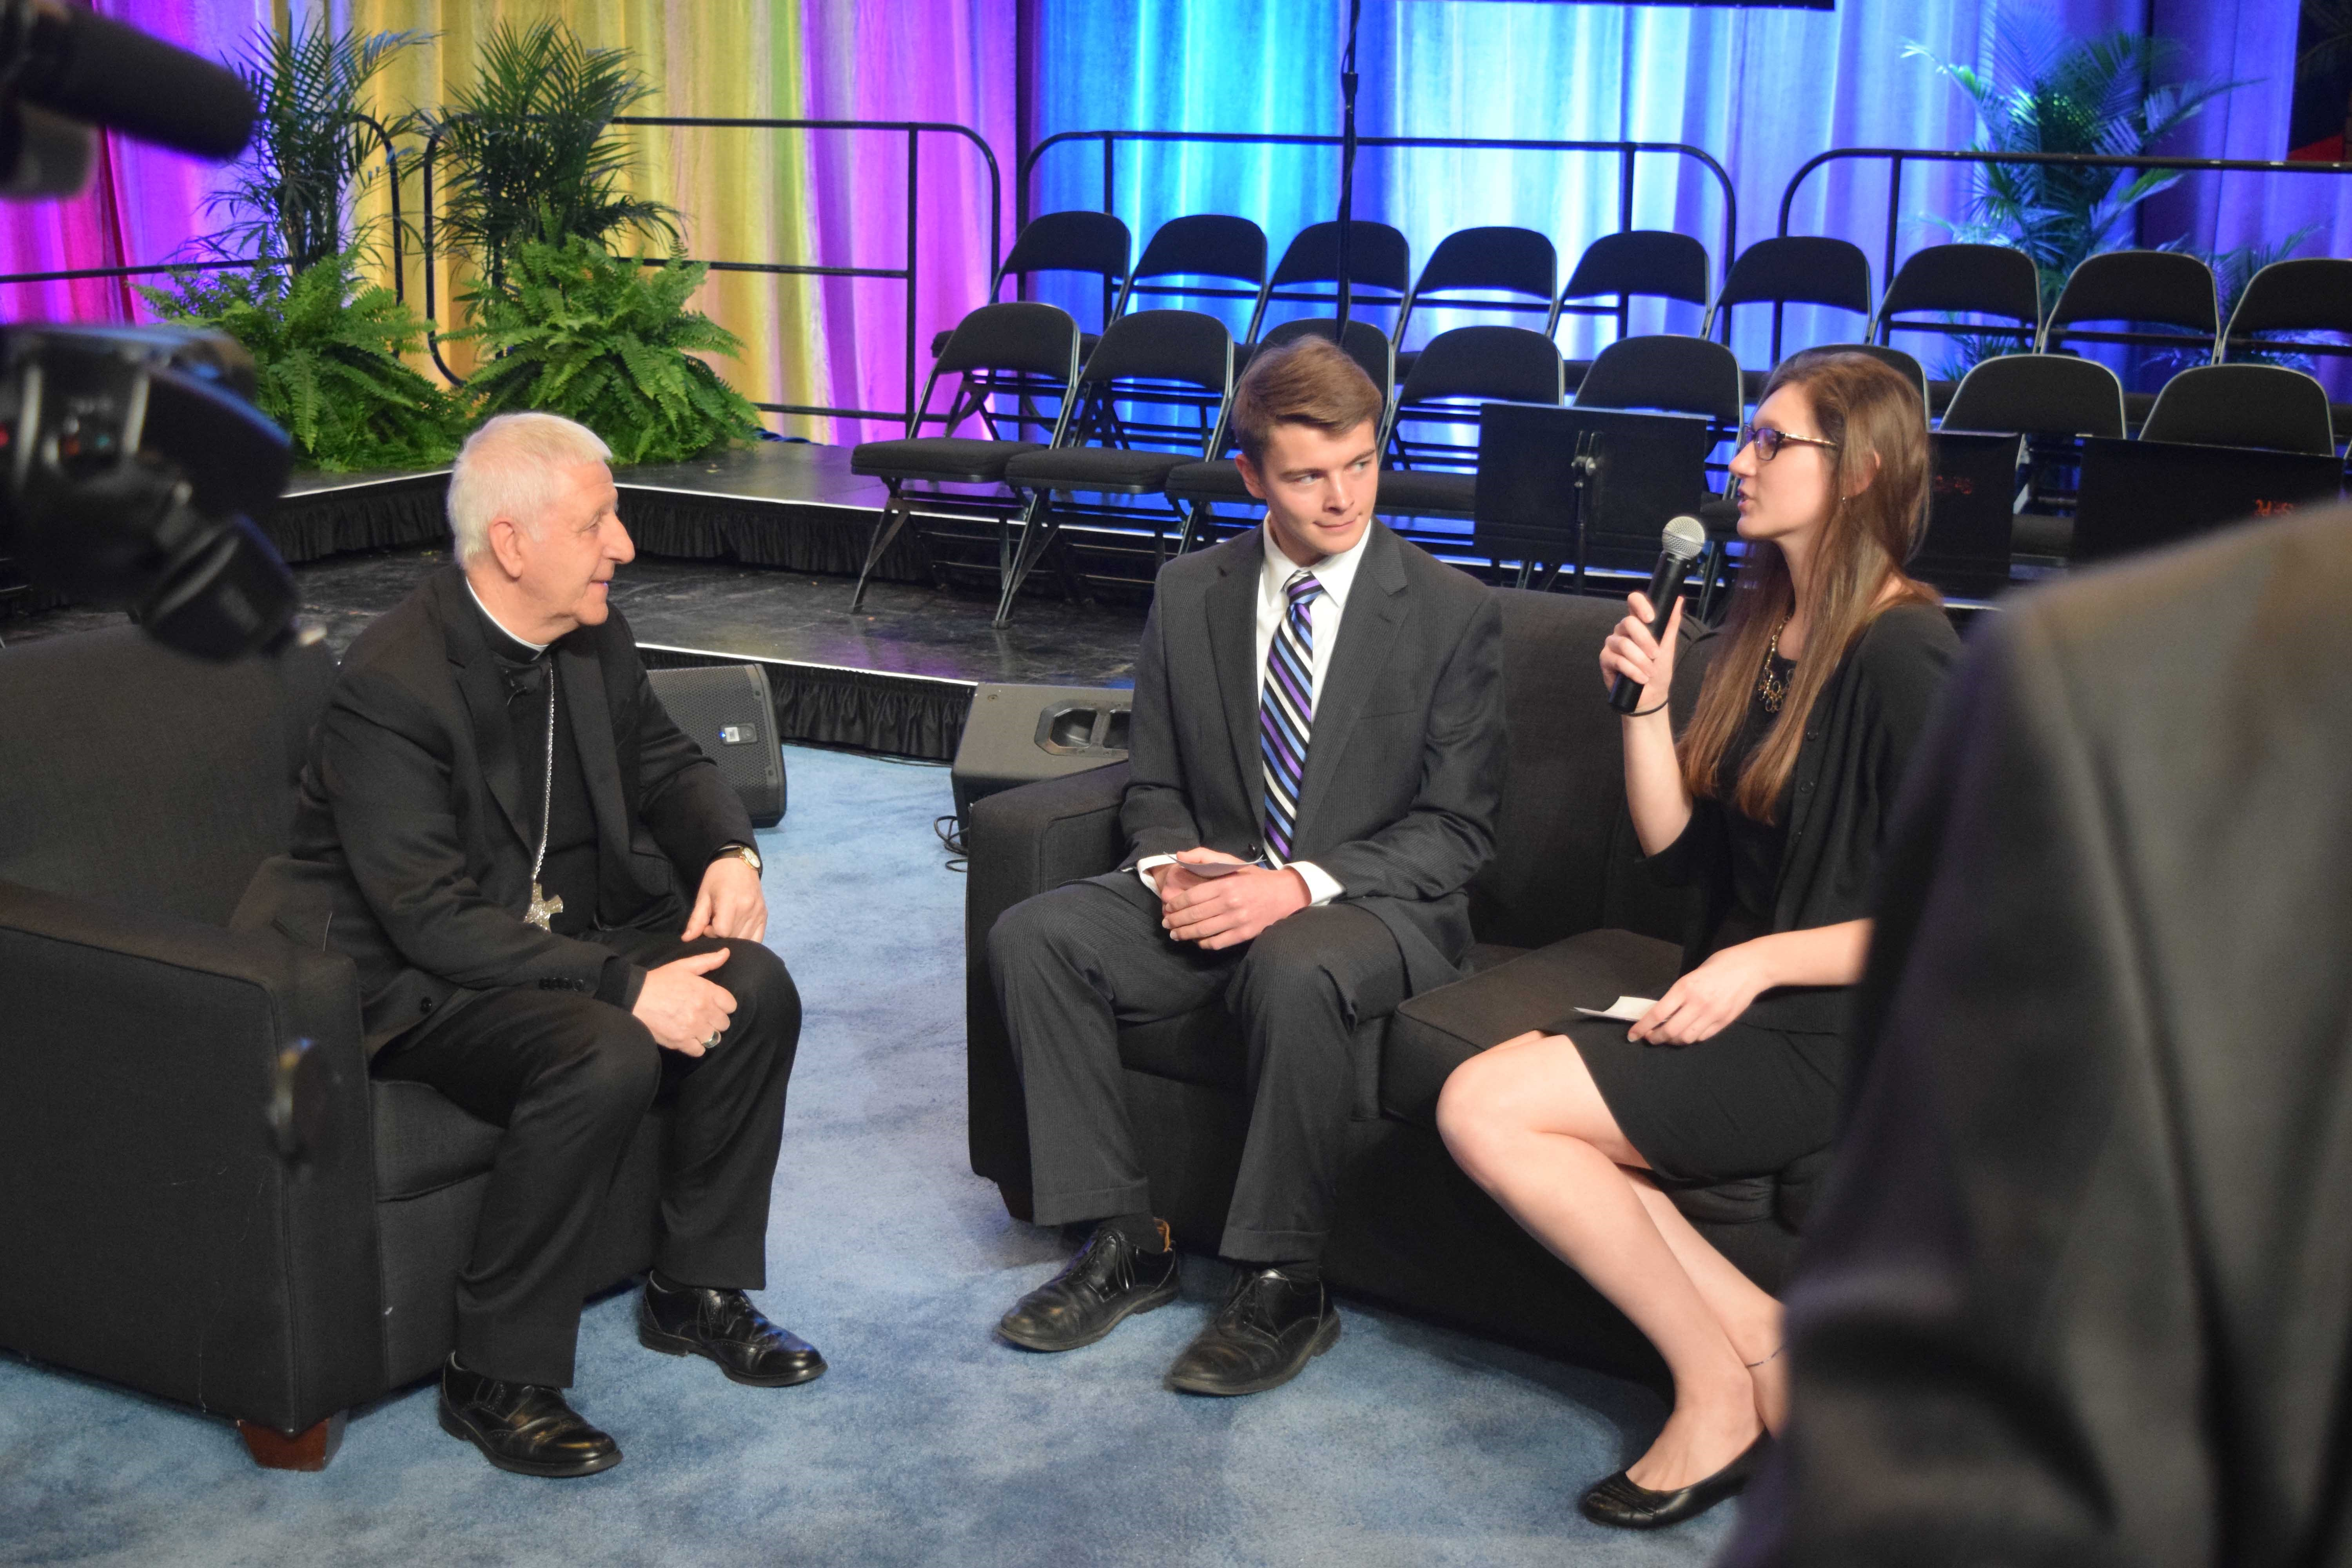 Seton and Elder students interview Cardinal Versaldi